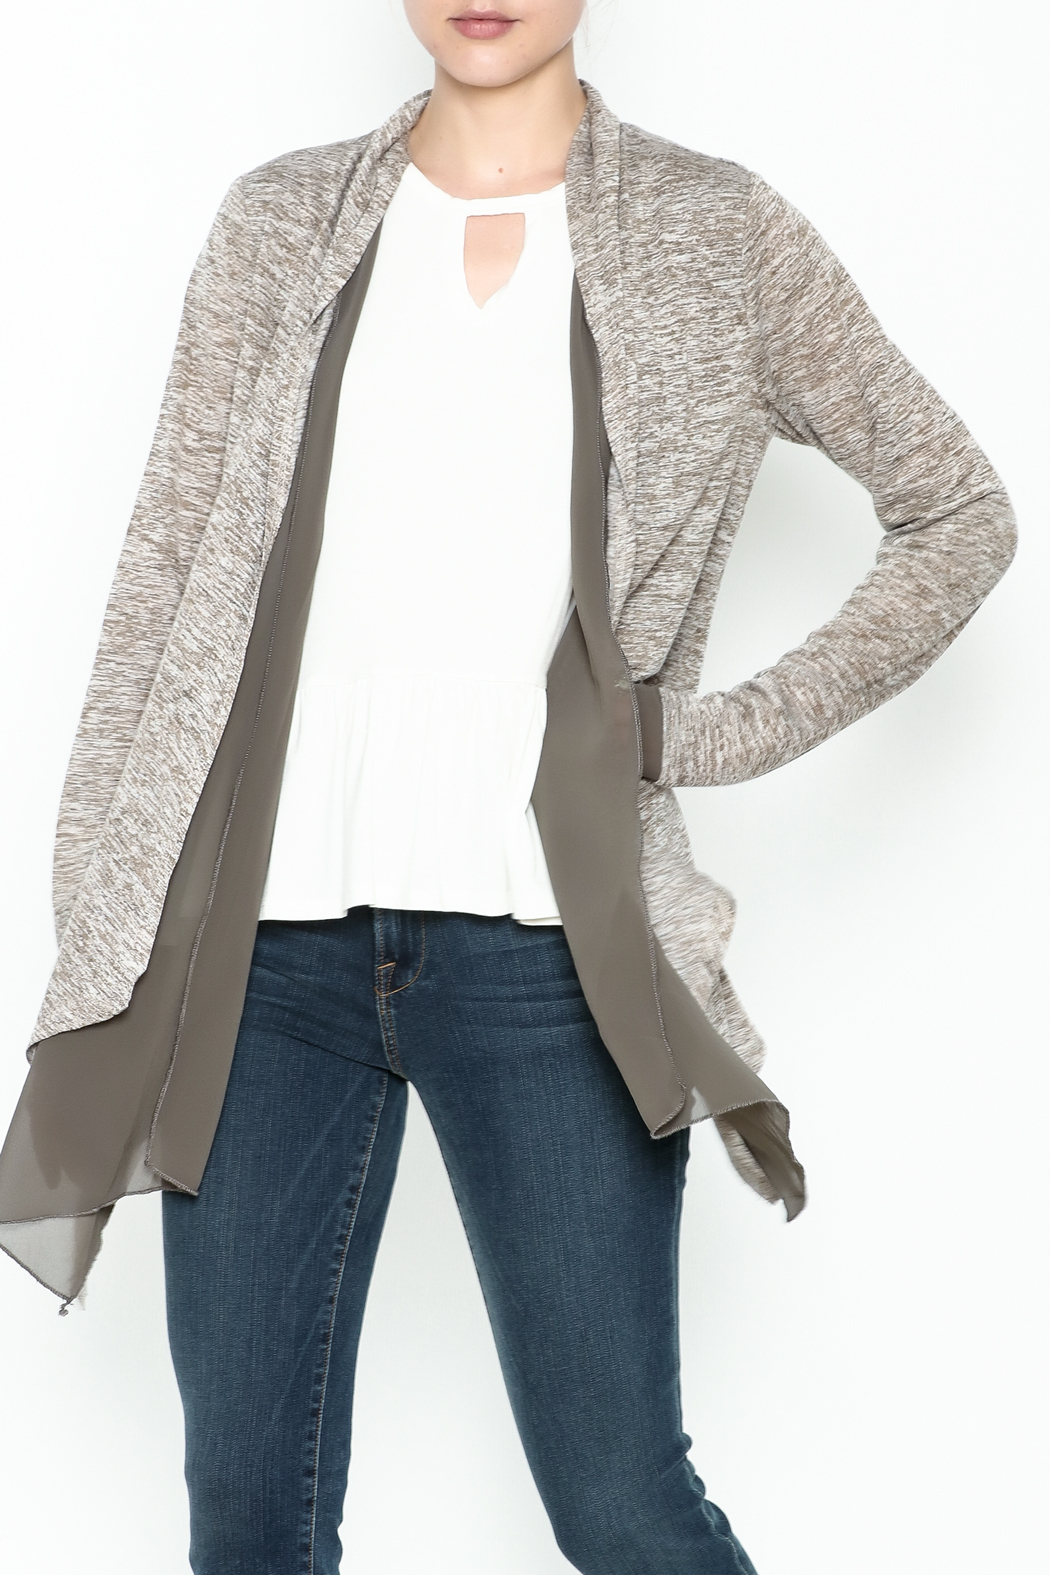 Coco + Carmen Double Layer Cardigan - Main Image